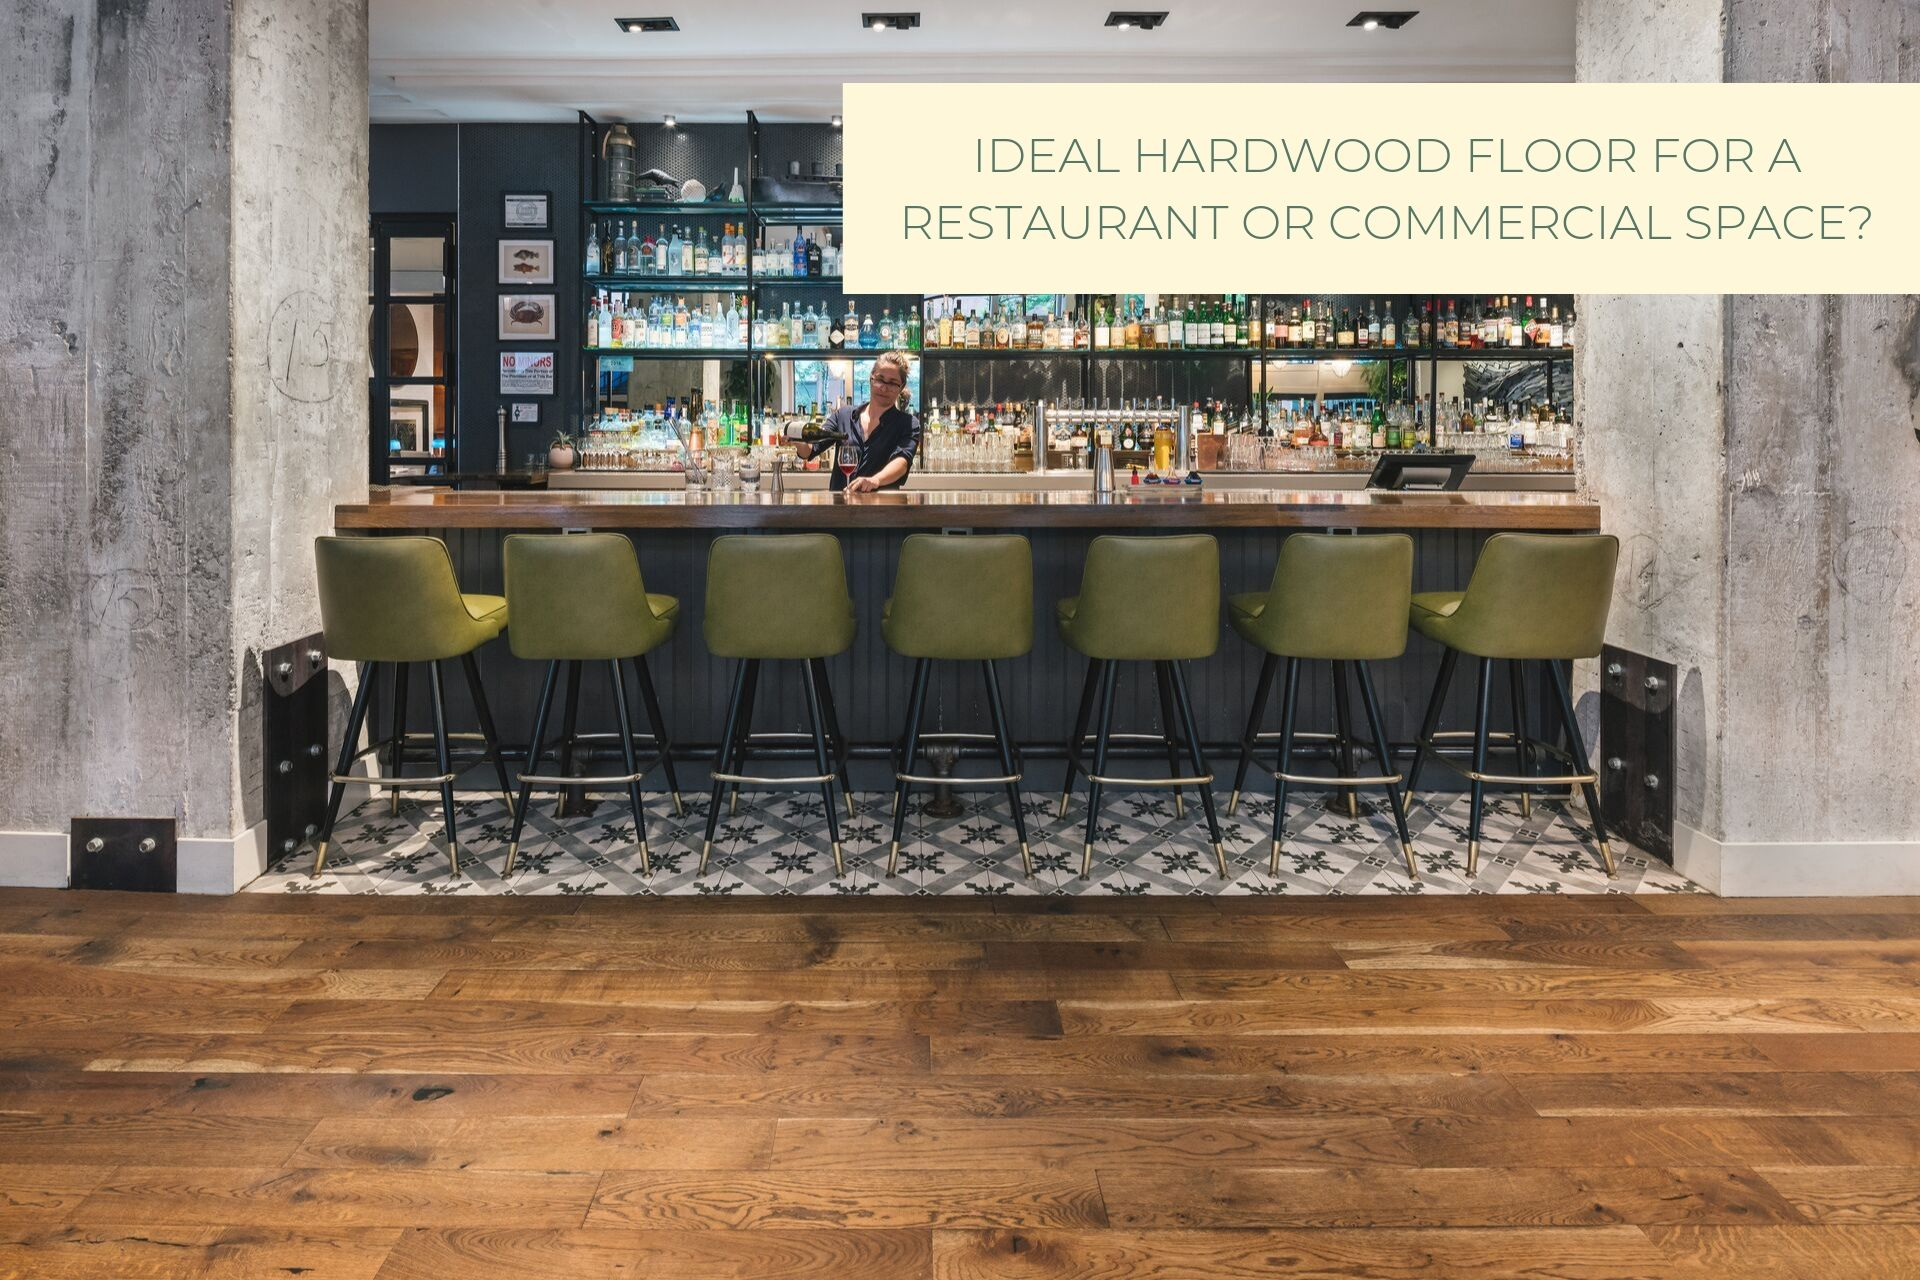 Castle Bespoke_ Hardwood Flooring for Restaurants Or Commercial